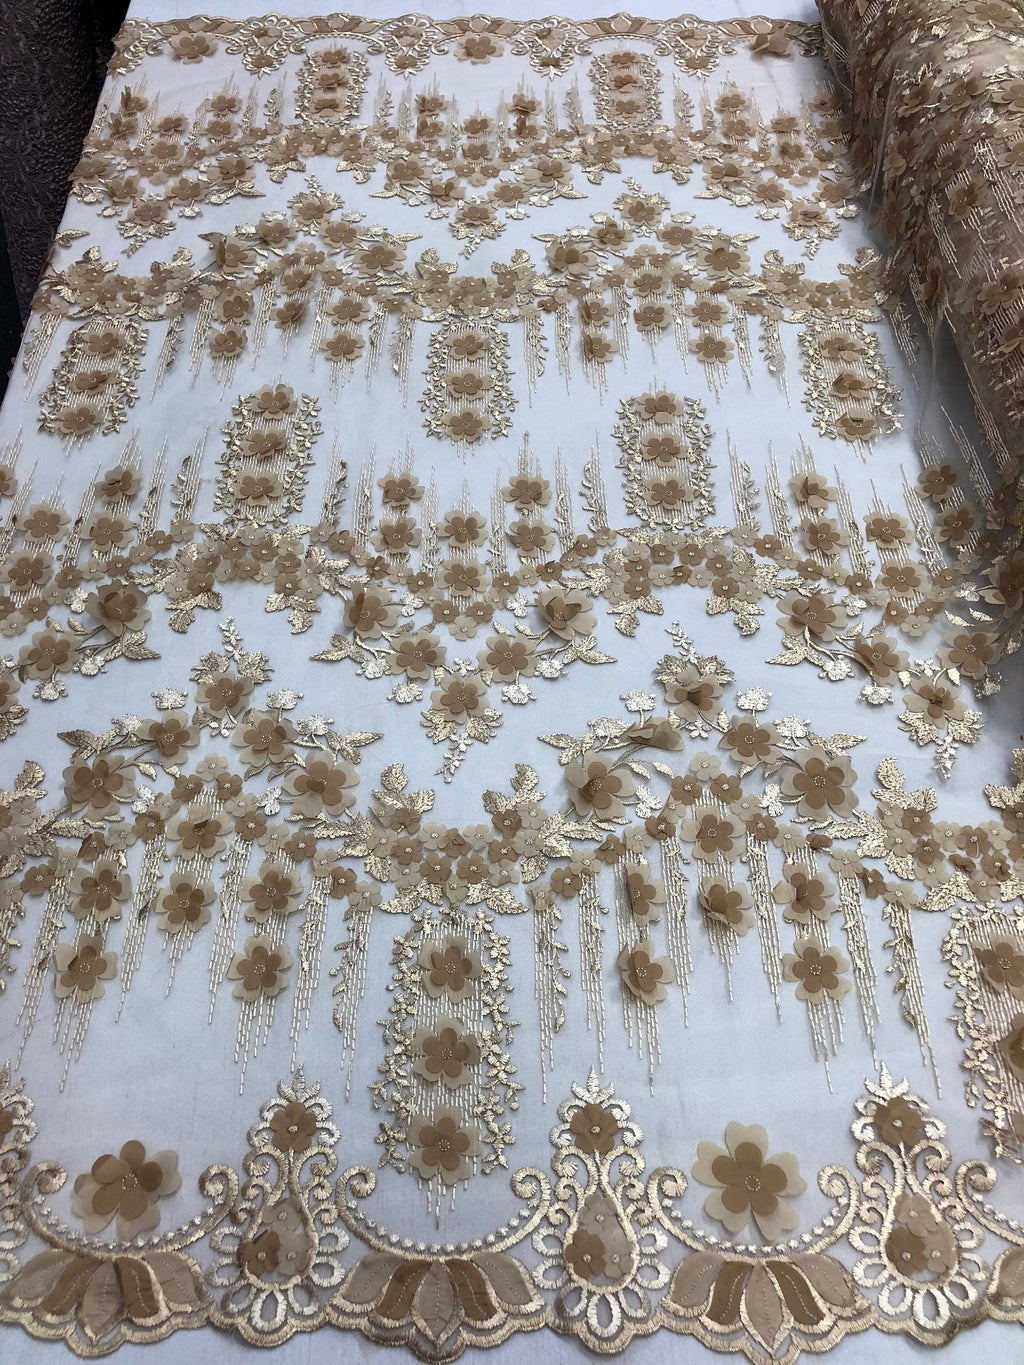 Bridal Wedding Lace Fabric By The Yard - Hand Embroidered Flower 3D CHAMPAGNE For Veil Mesh Dress Top Wedding Decoration - KINGDOM OF FABRICS